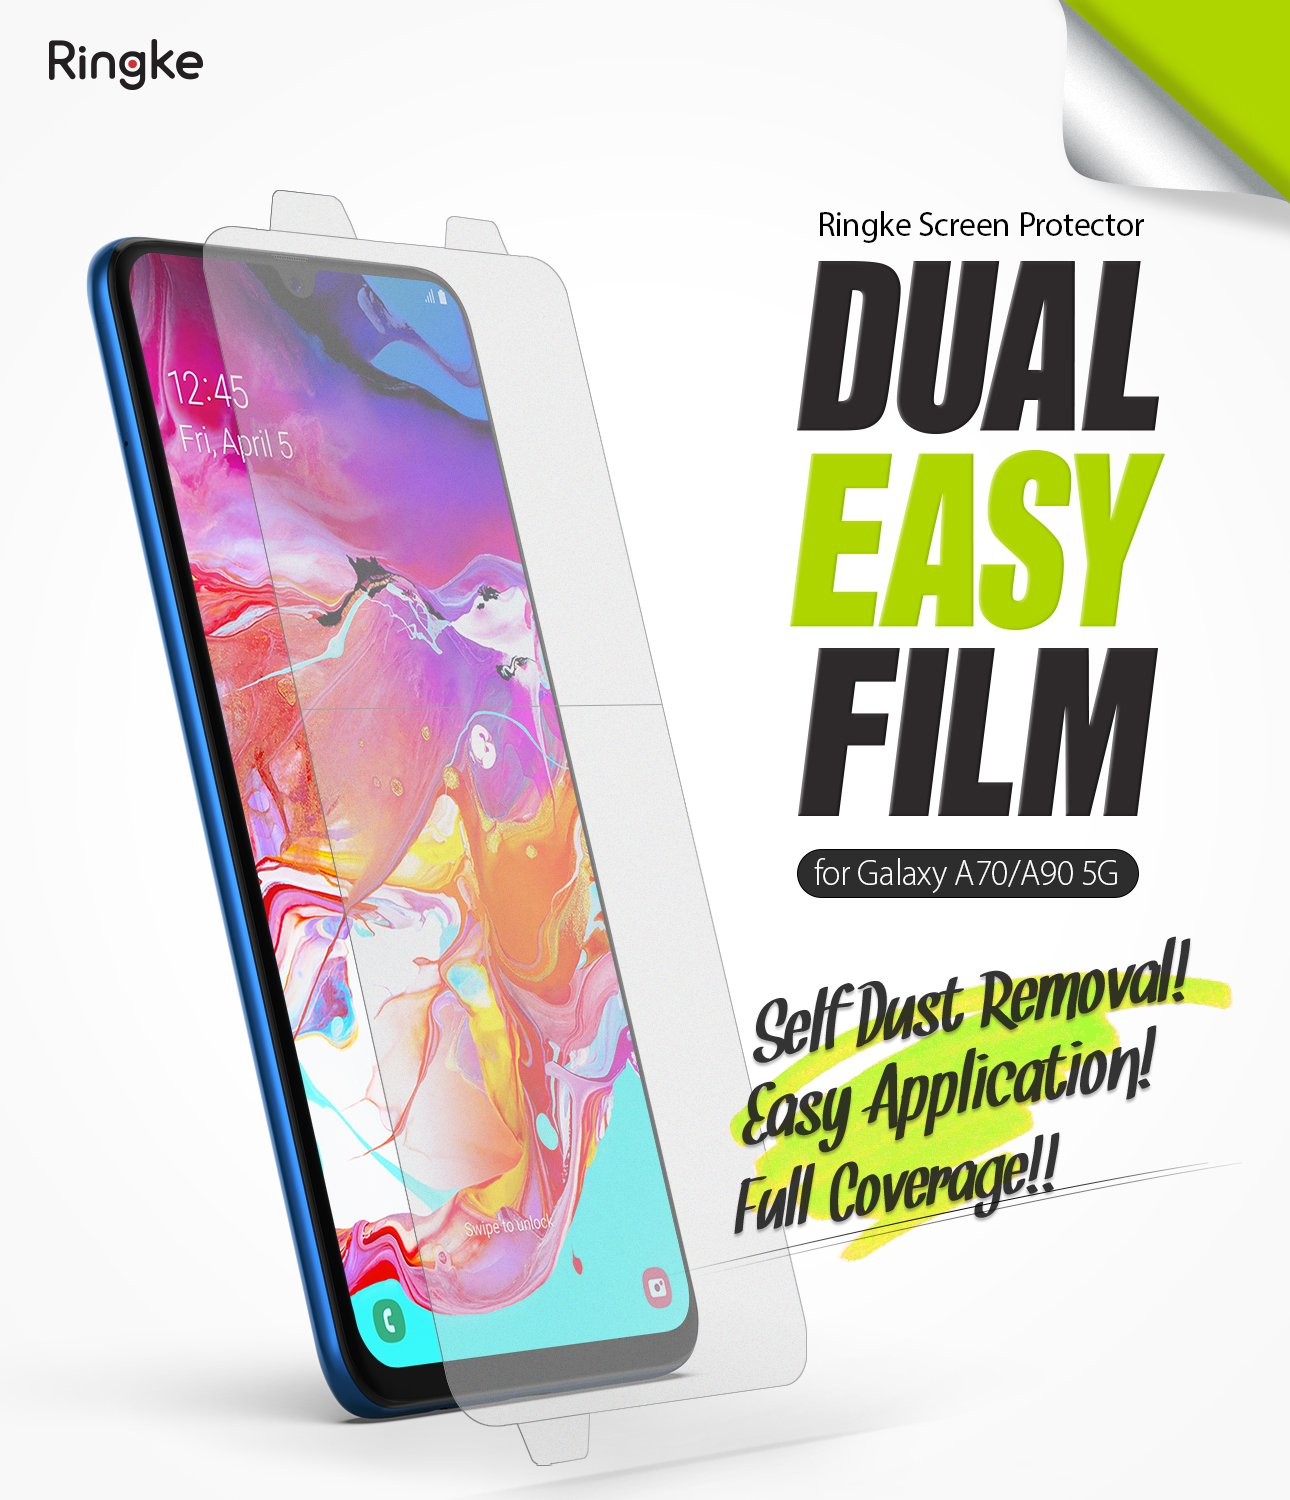 Ringke Galaxy A70 Dual Easy Screen Protector